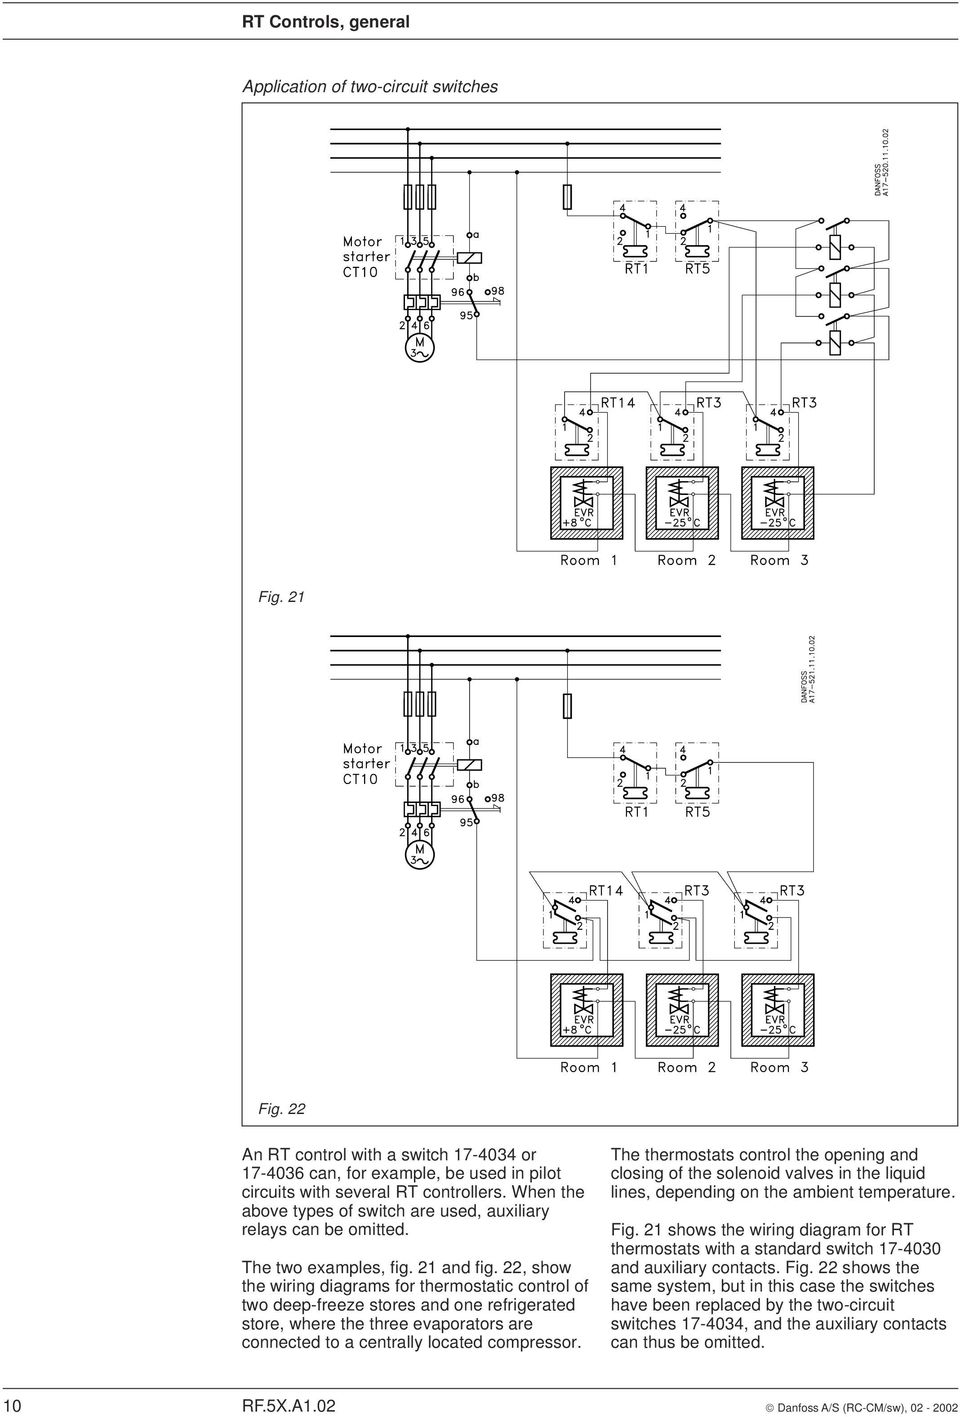 22, show the wiring diagrams for thermostatic control of two deep-freeze stores and one refrigerated store, where the three evaporators are connected to a centrally located compressor.